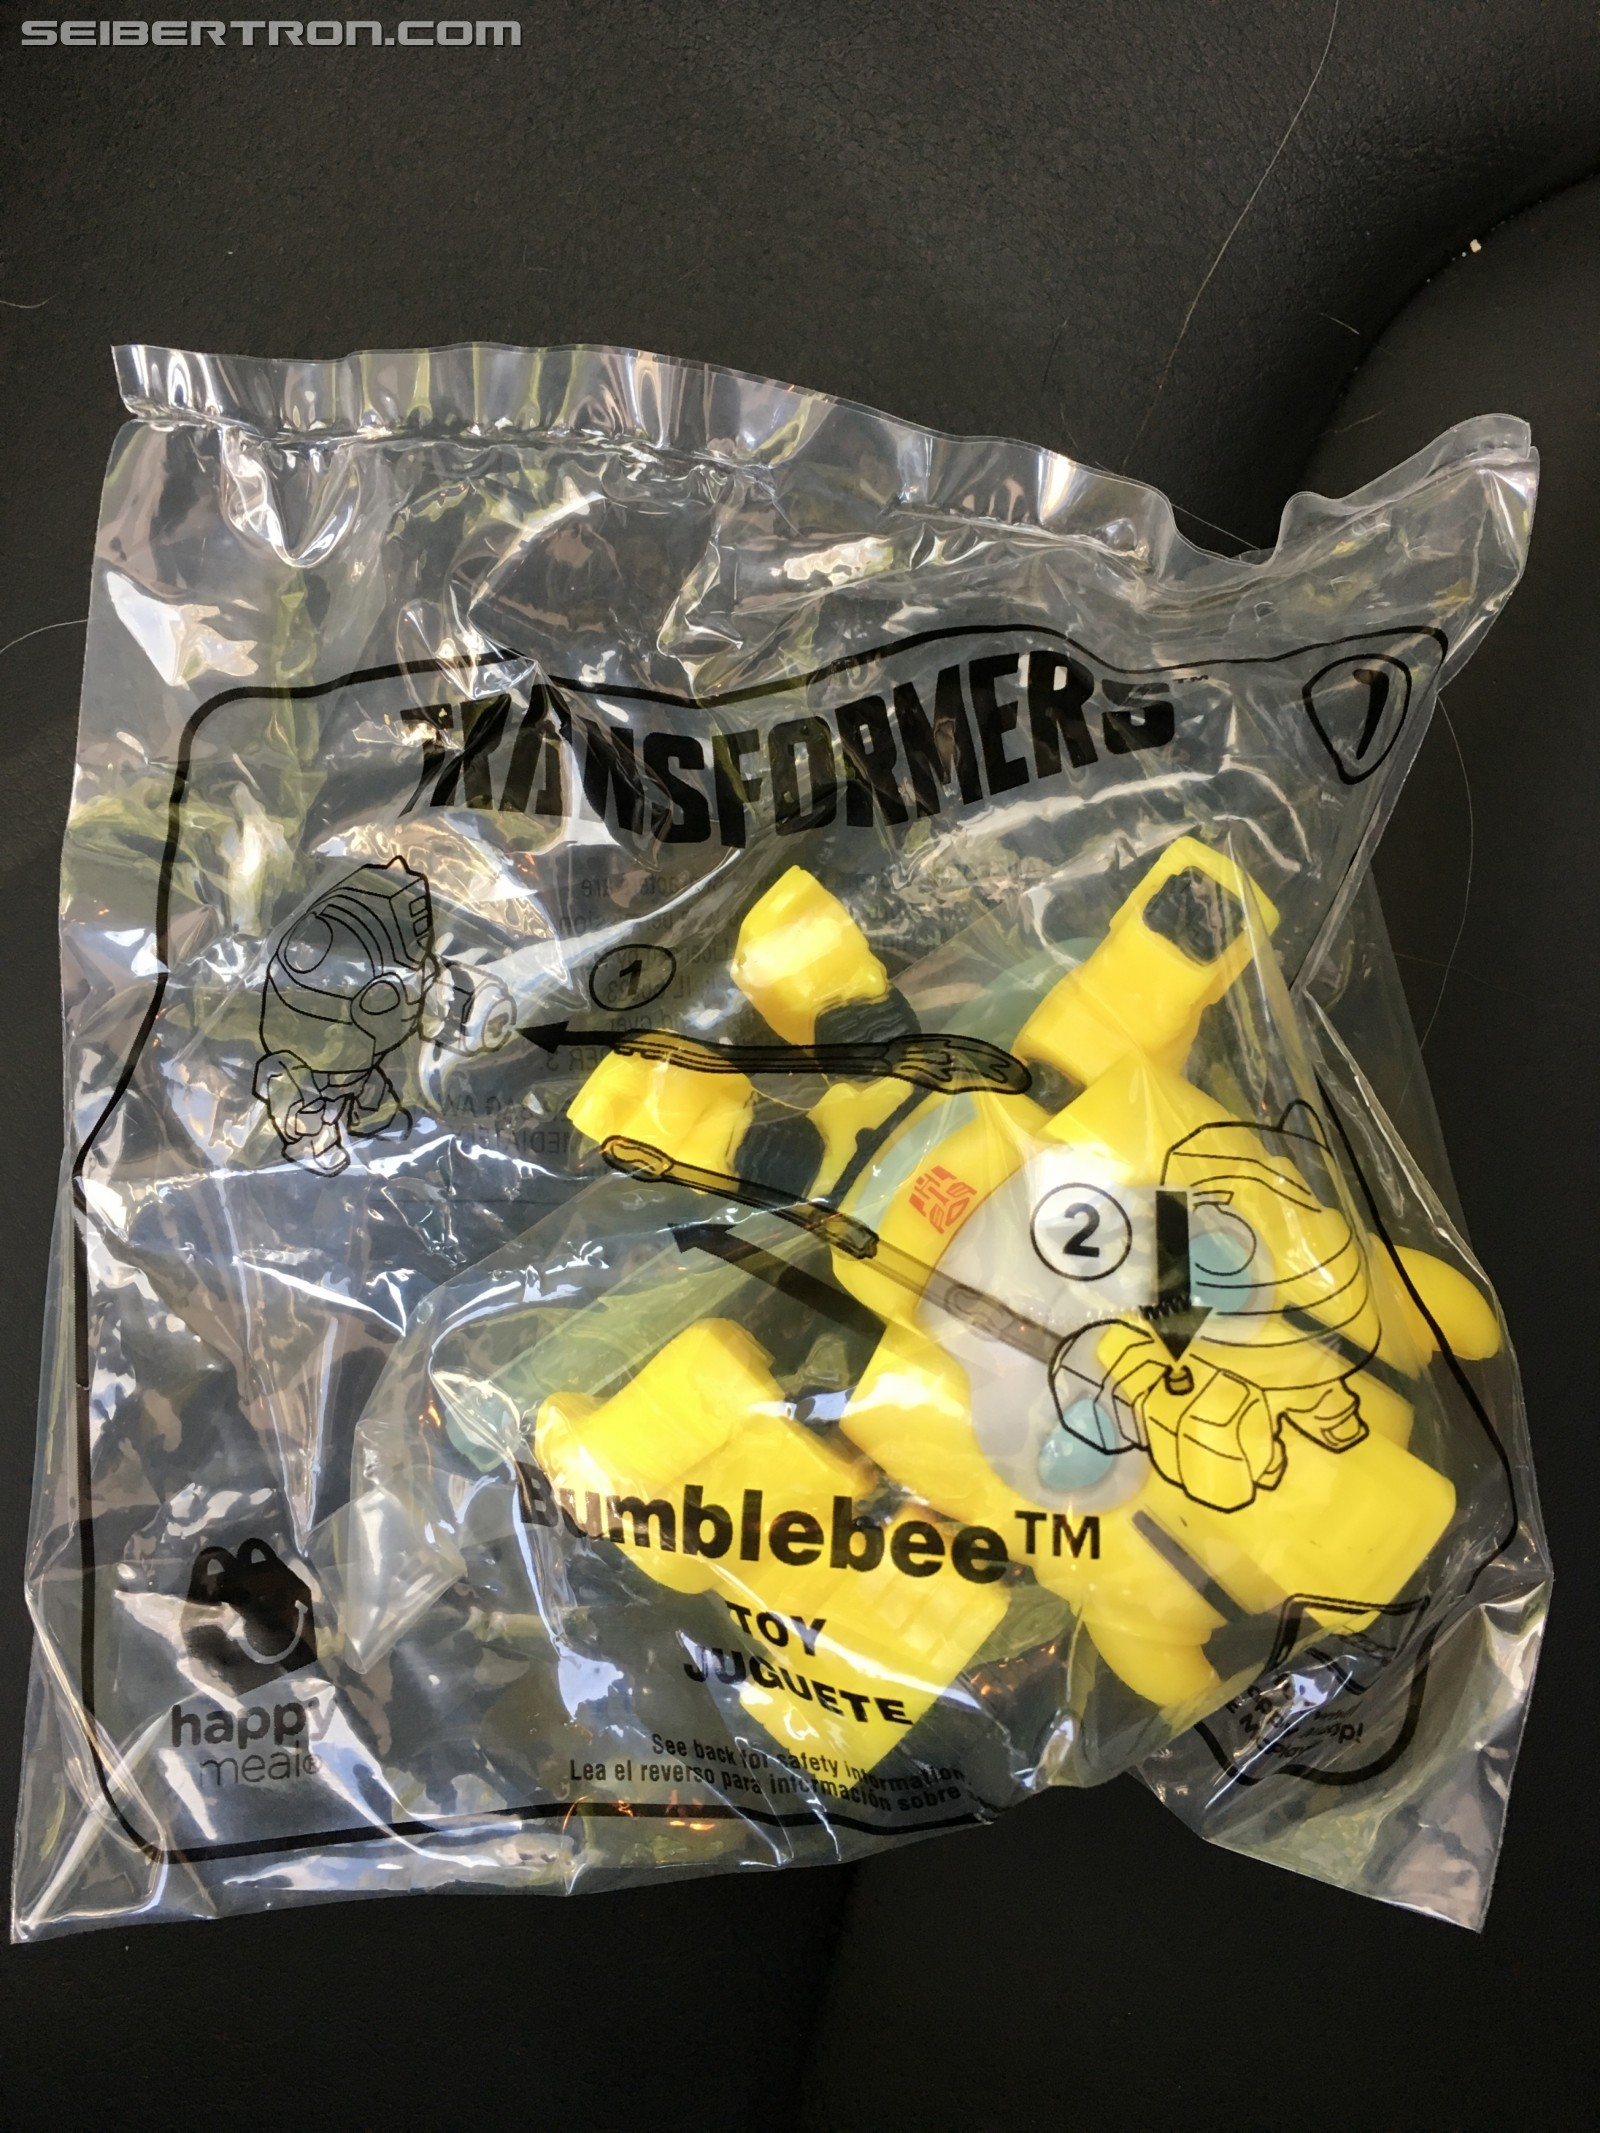 Transformers News: McDonald's Happy Meal Cyberverse Toys Rebranded as Bumblebee Movie Toys for US